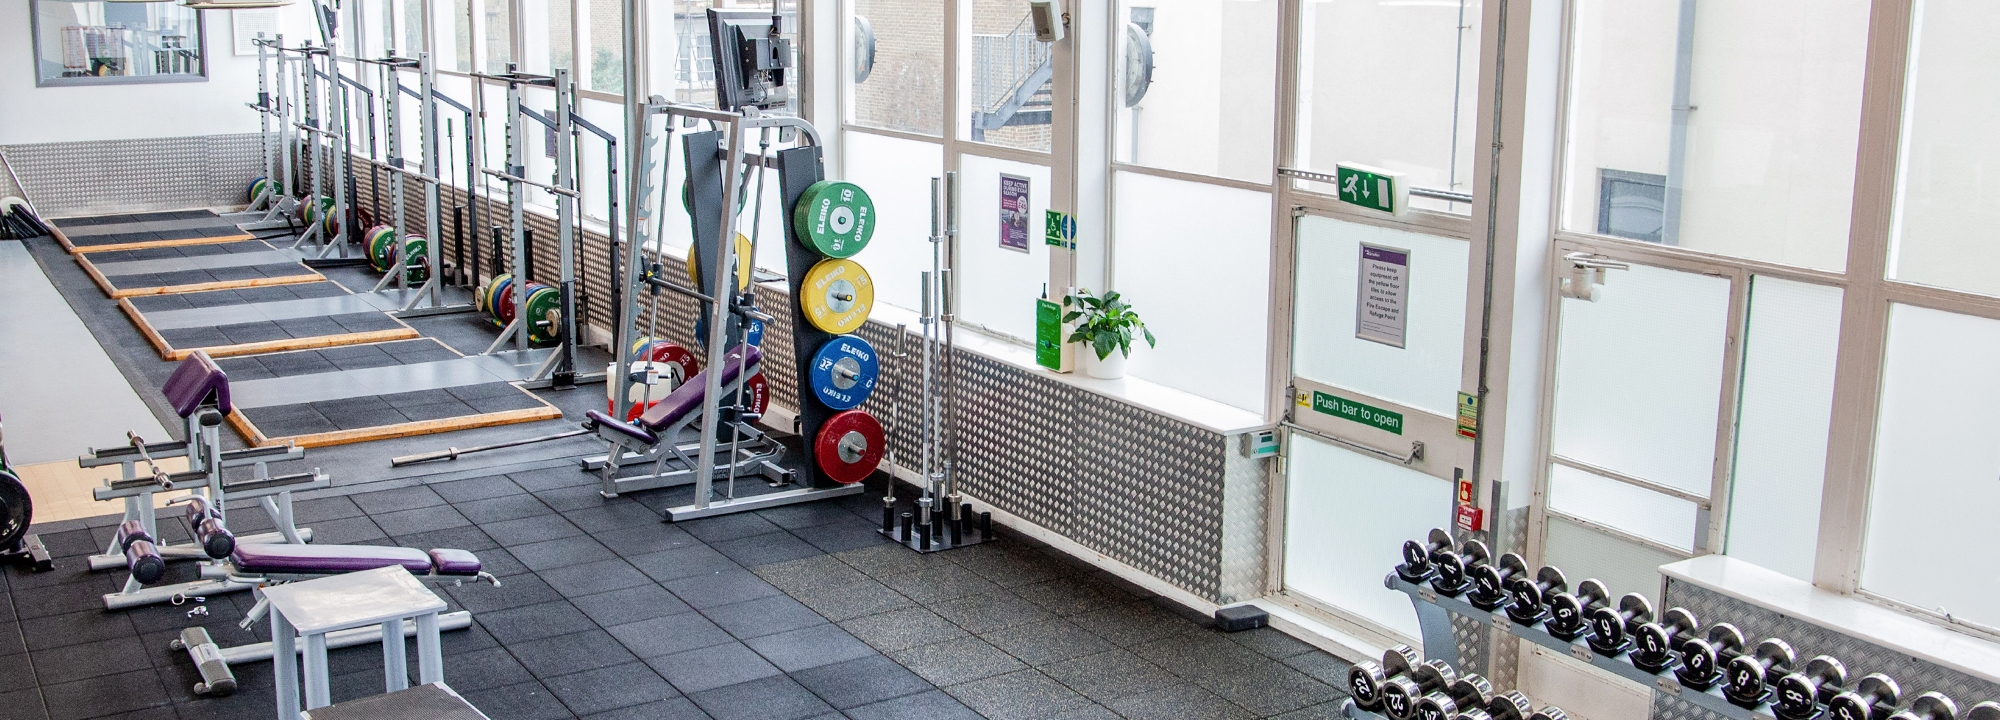 Qmotion is the Students' Union run Sport & Fitness Centre, located on the Mile End campus. We provide students, staff, and members of the community with great facilities in a safe and welcoming environment.